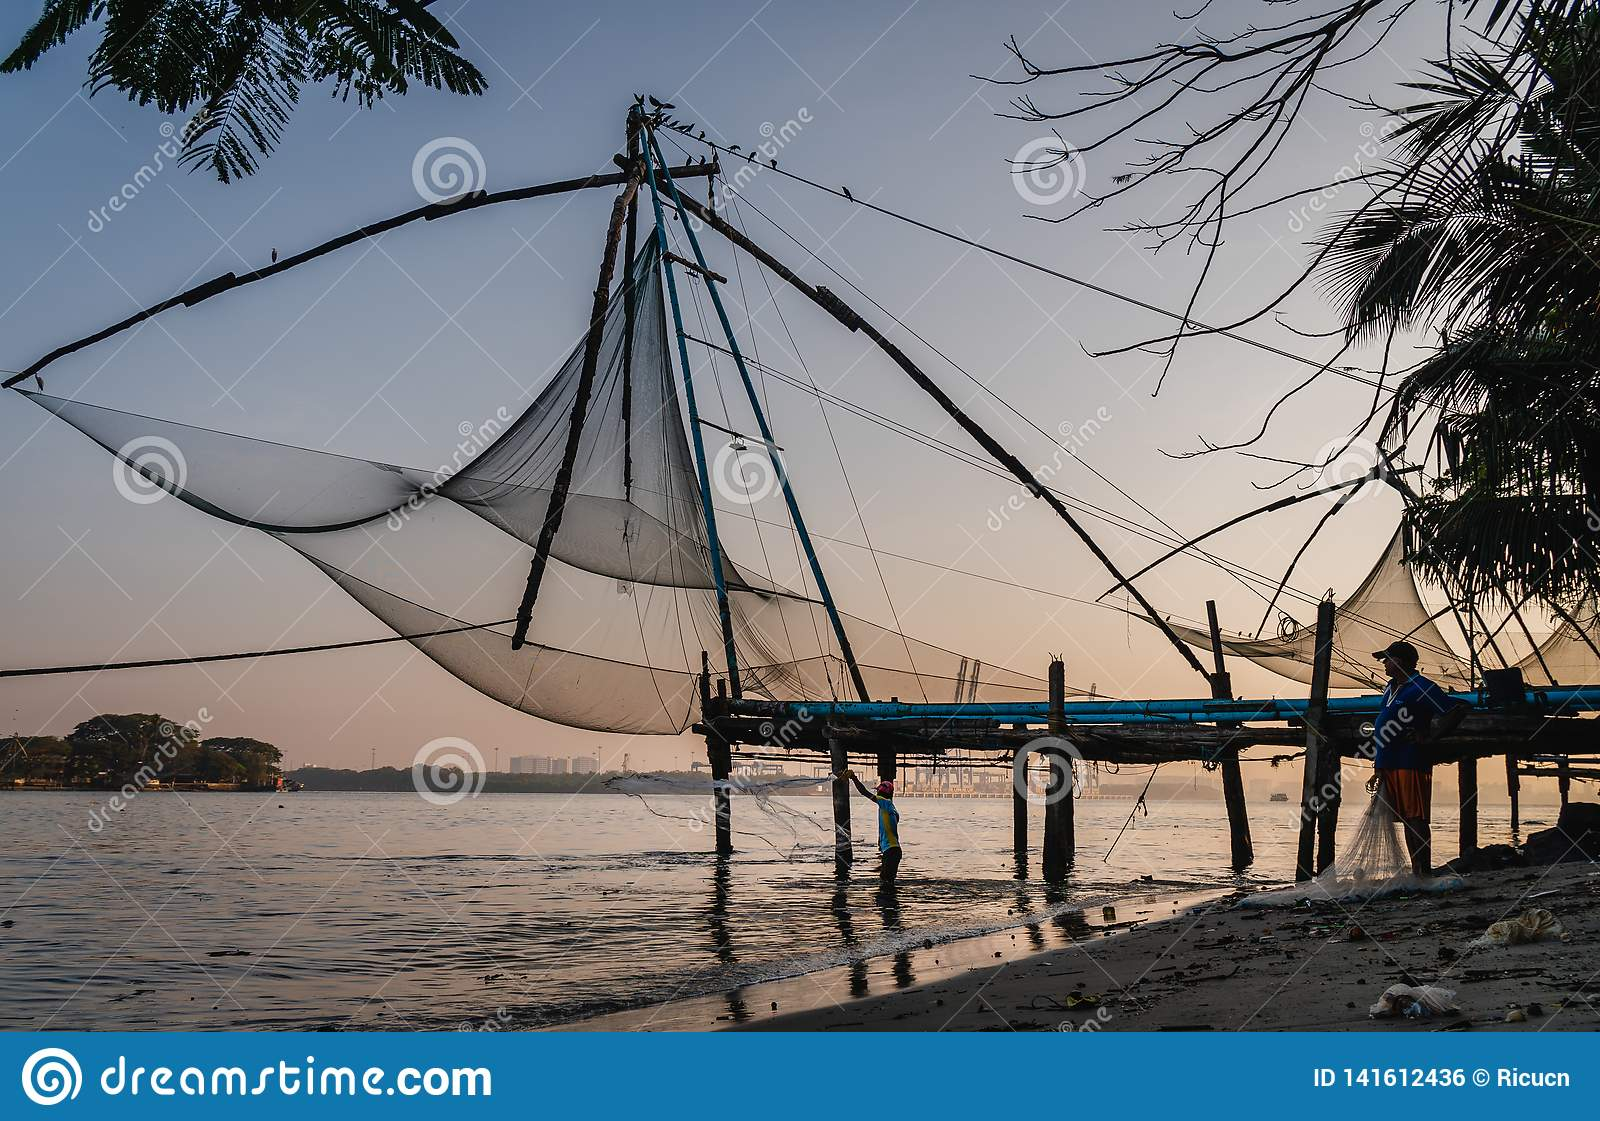 Chinese fishing nets during the Golden Hours at Fort Kochi, Kerala, India sunrise fisherman work